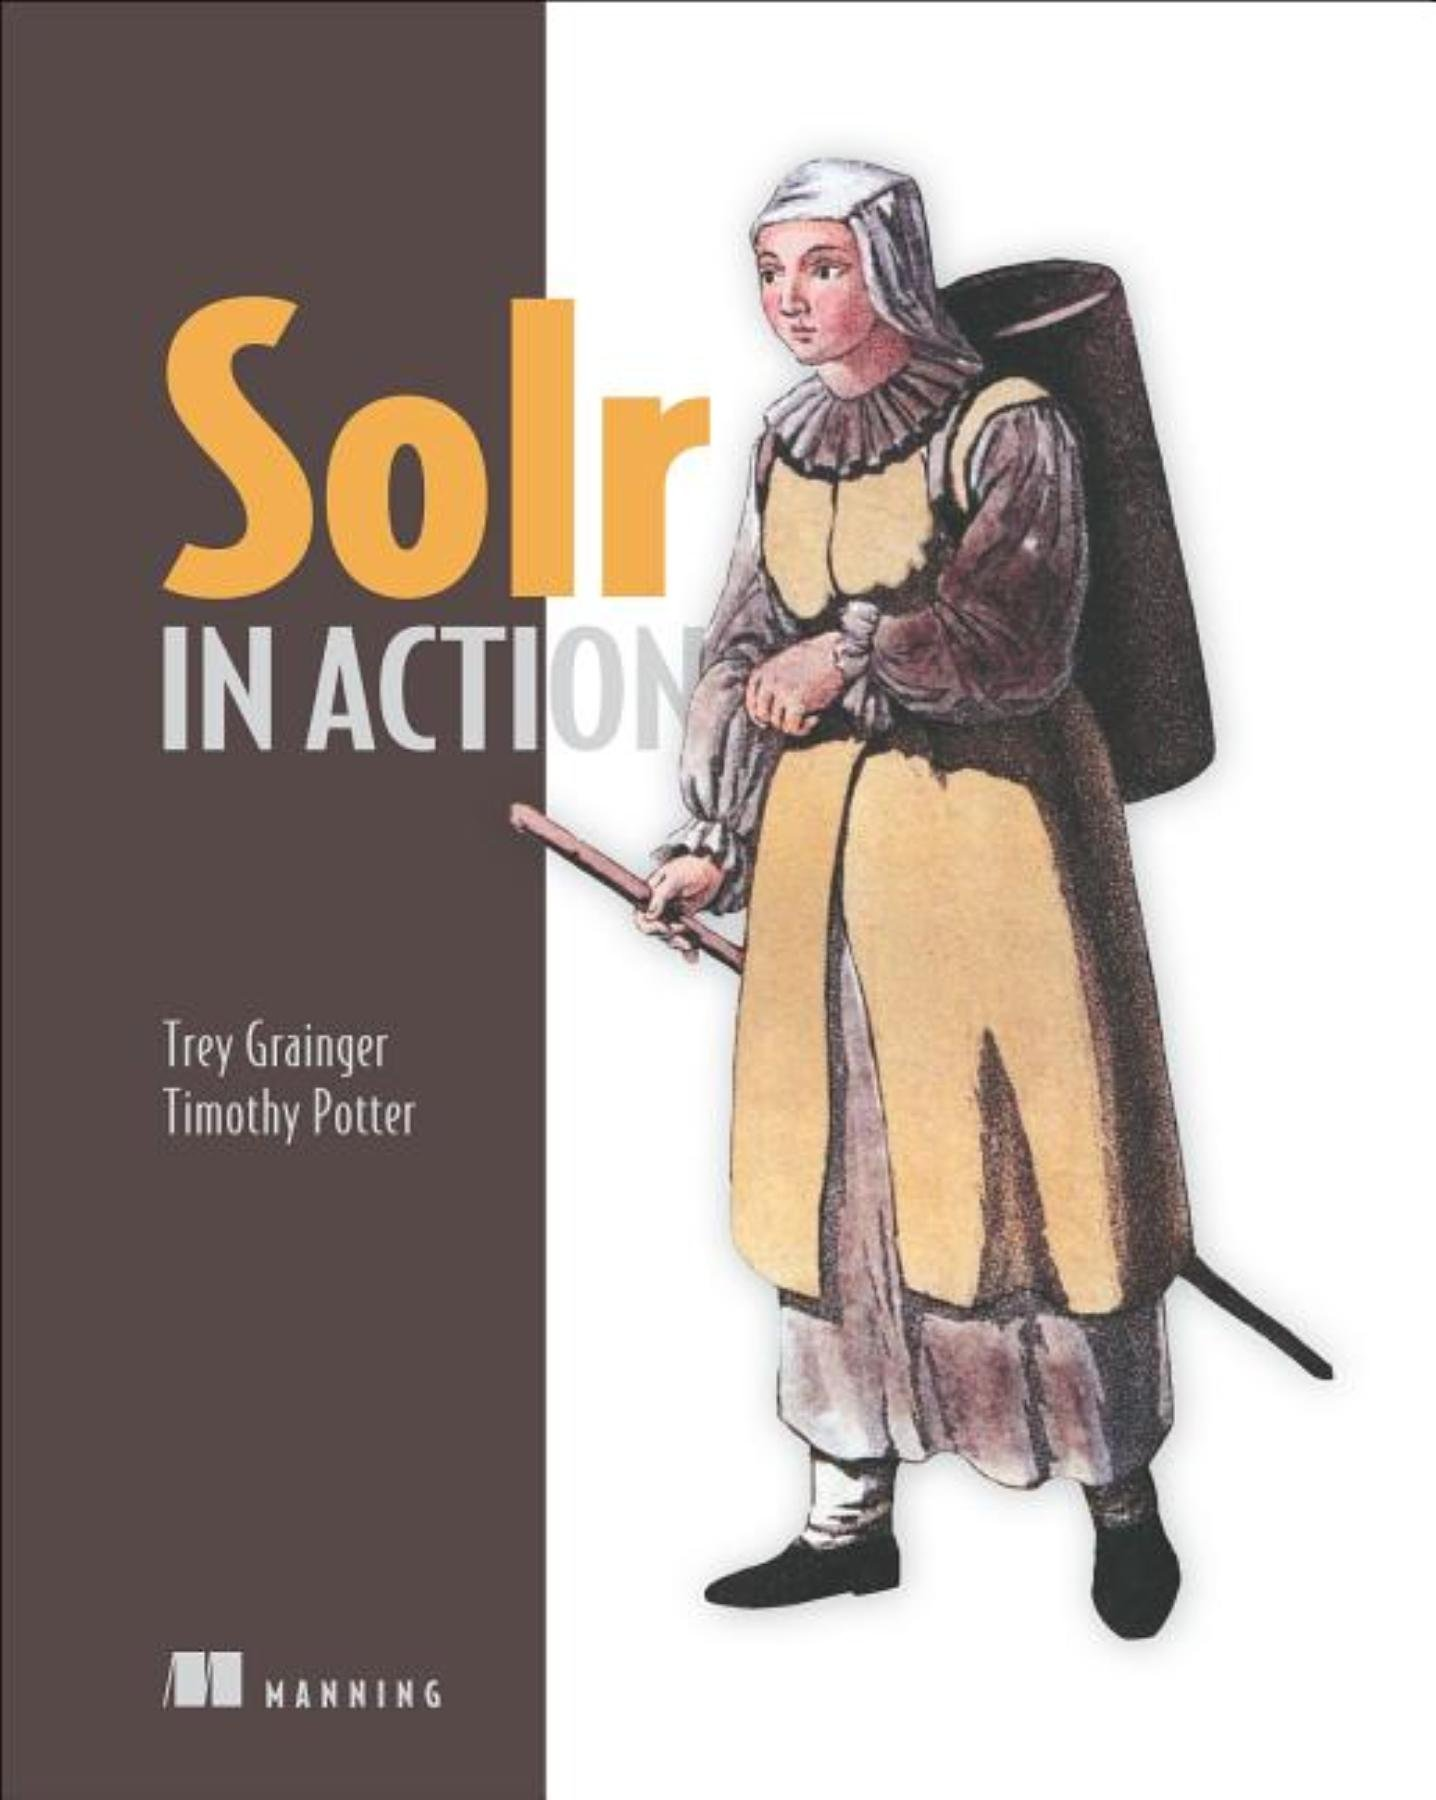 Download solr in action | pdf booksread solr in action | ebook.